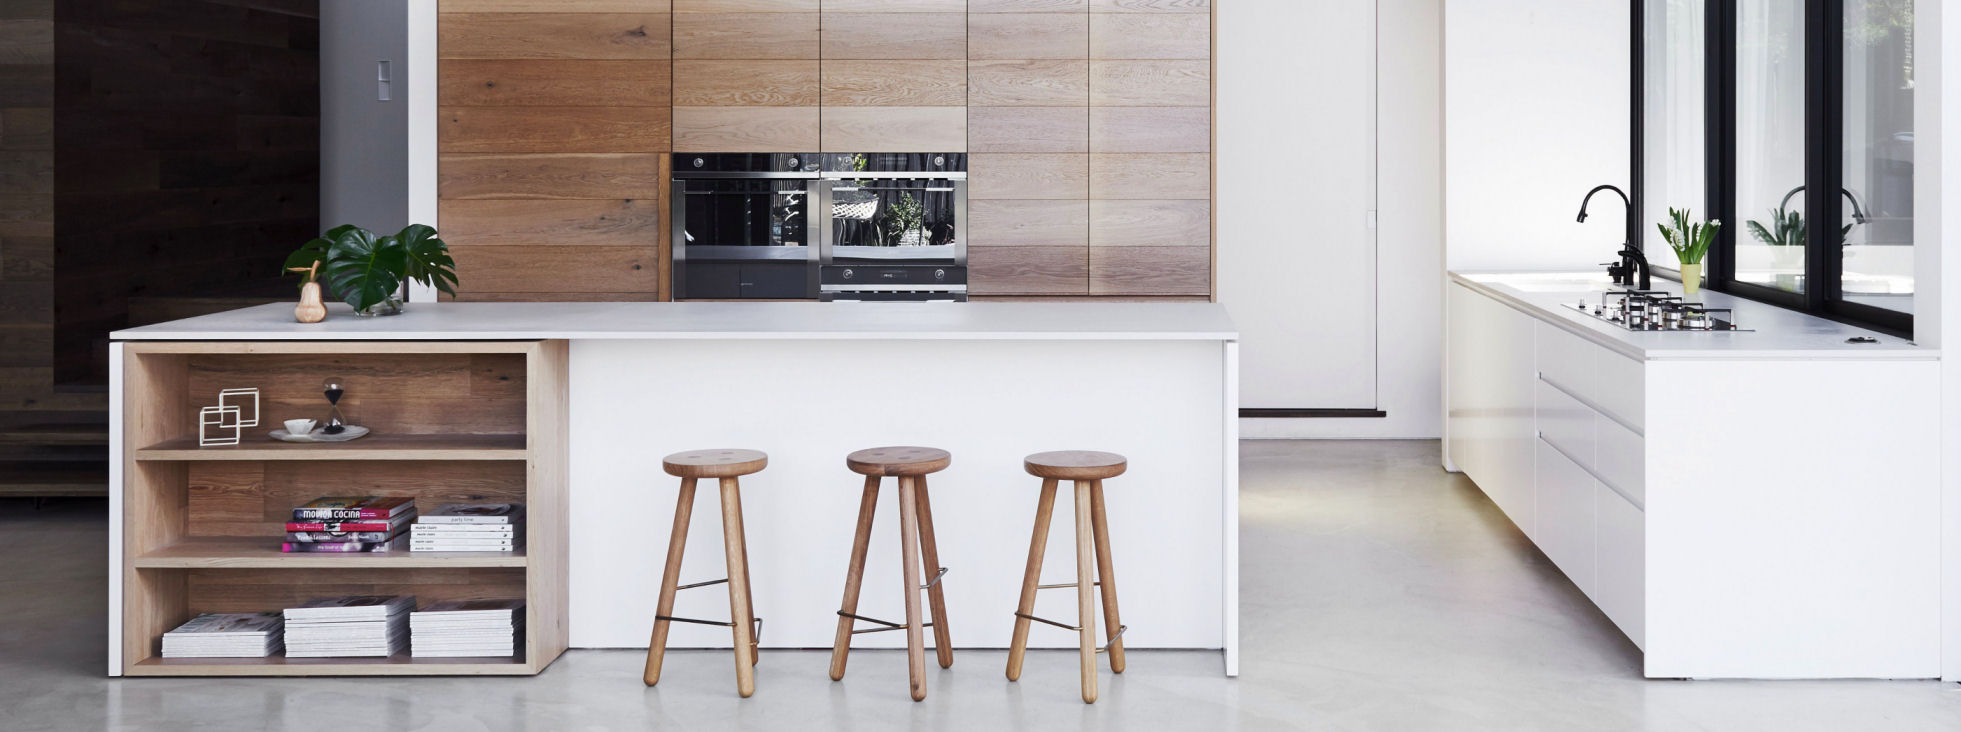 banner-kitchen6.jpg